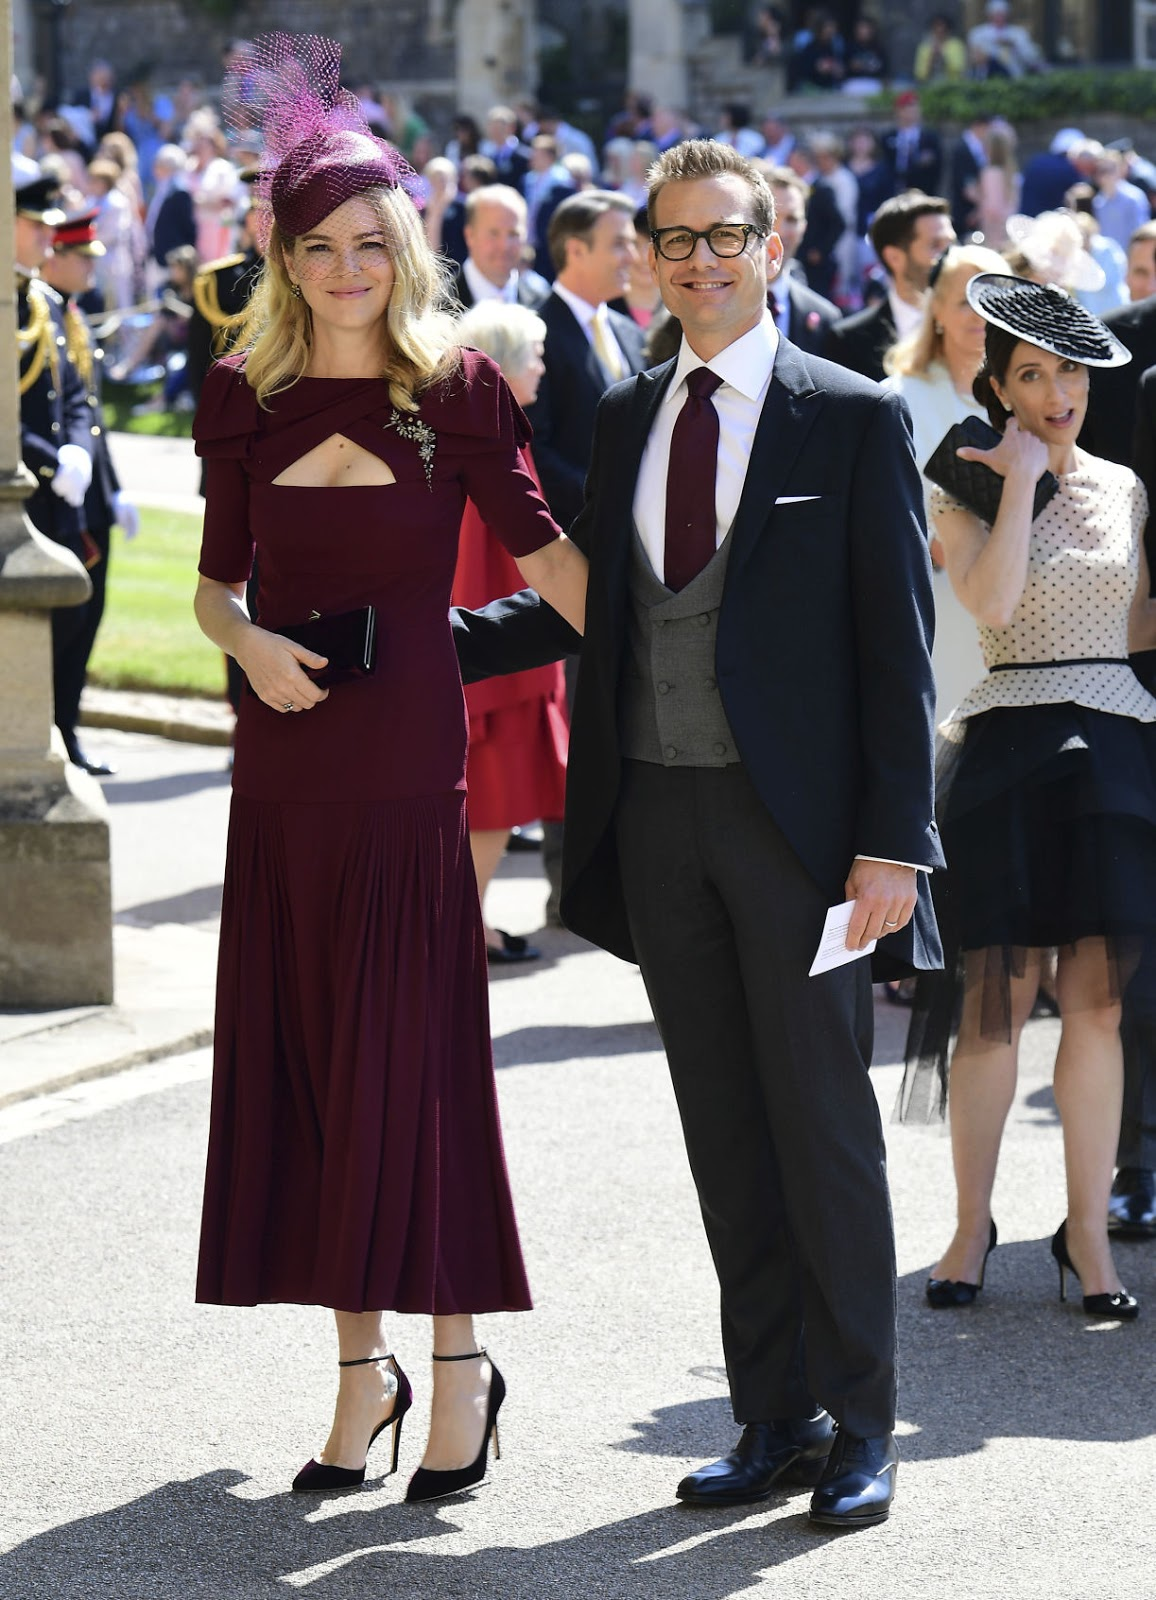 Gabriel Macht and wife Jacinda Barrett arrive for the wedding ceremony of Prince Harry and Meghan Markle at St. George's Chapel in Windsor Castle in Windsor, near London, England